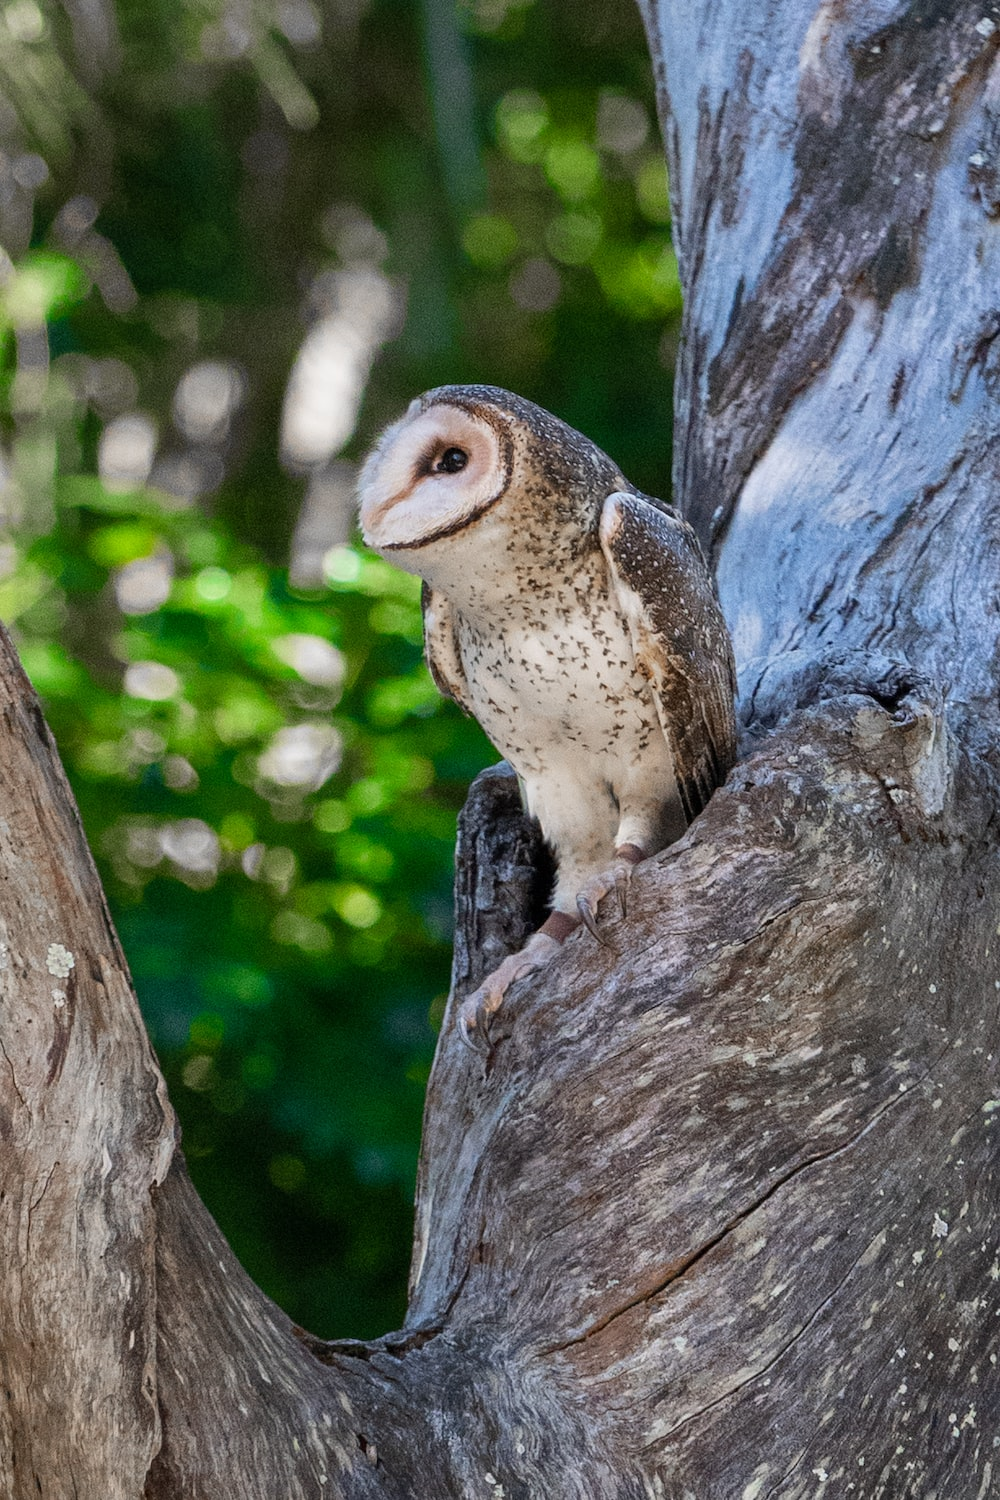 brown and white owl on brown tree trunk during daytime